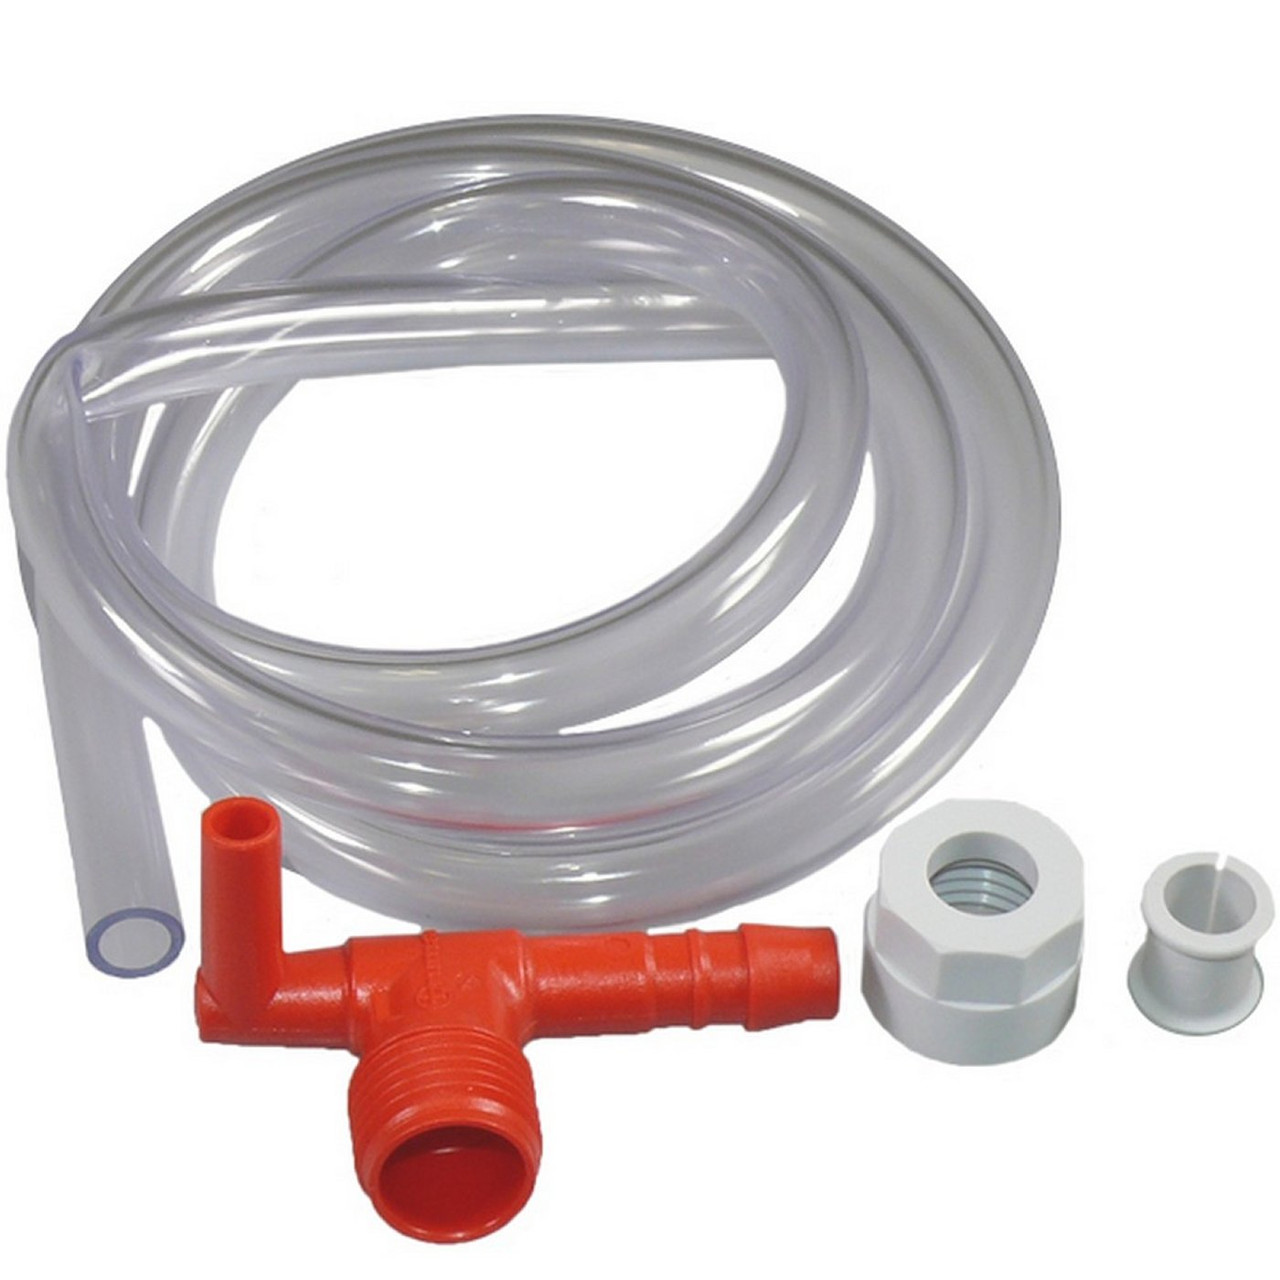 """Truma spare - Truma Ultrastore elbow with 1/2"""" flexible hose connection and 10mm clear breather pipe."""